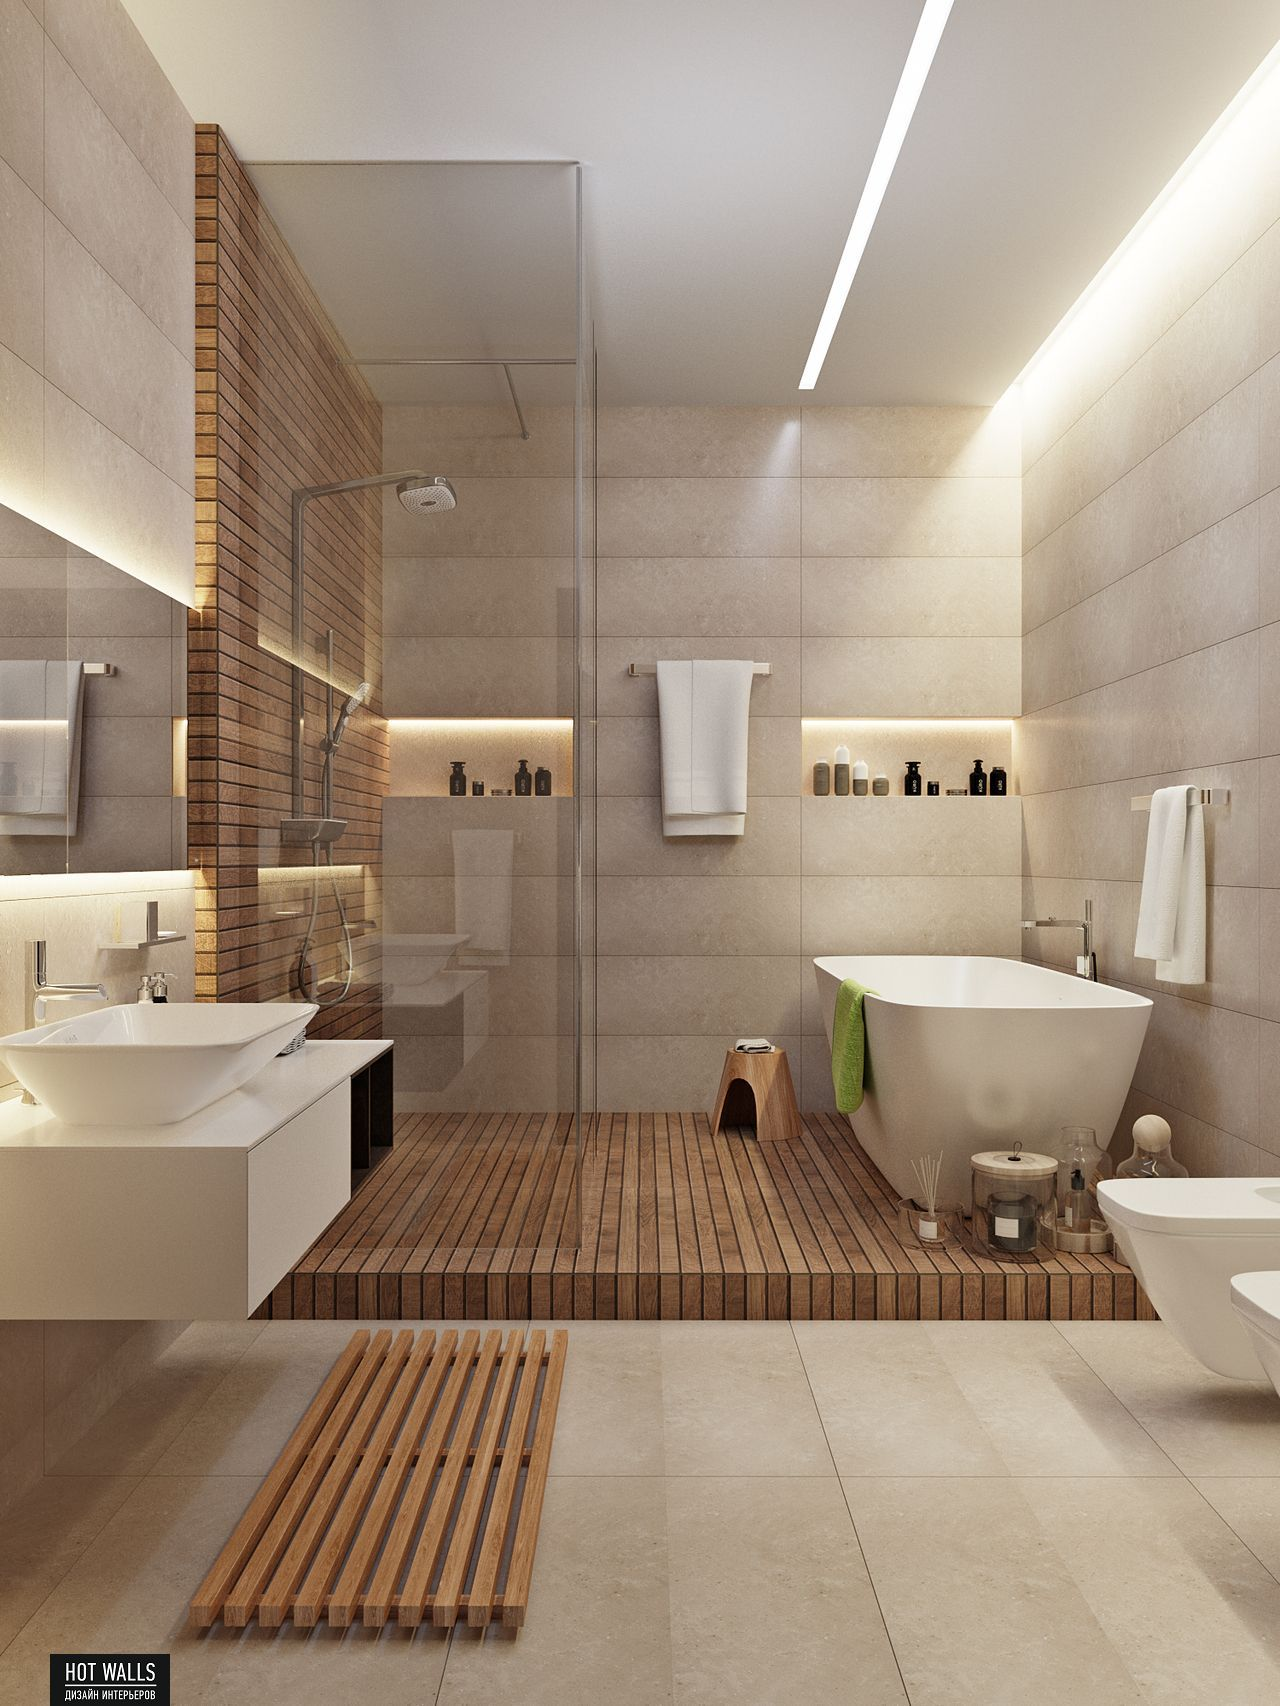 Vannaya 01 03 16 2 Industrial Design Pinterest Bathroom Zen And Showers